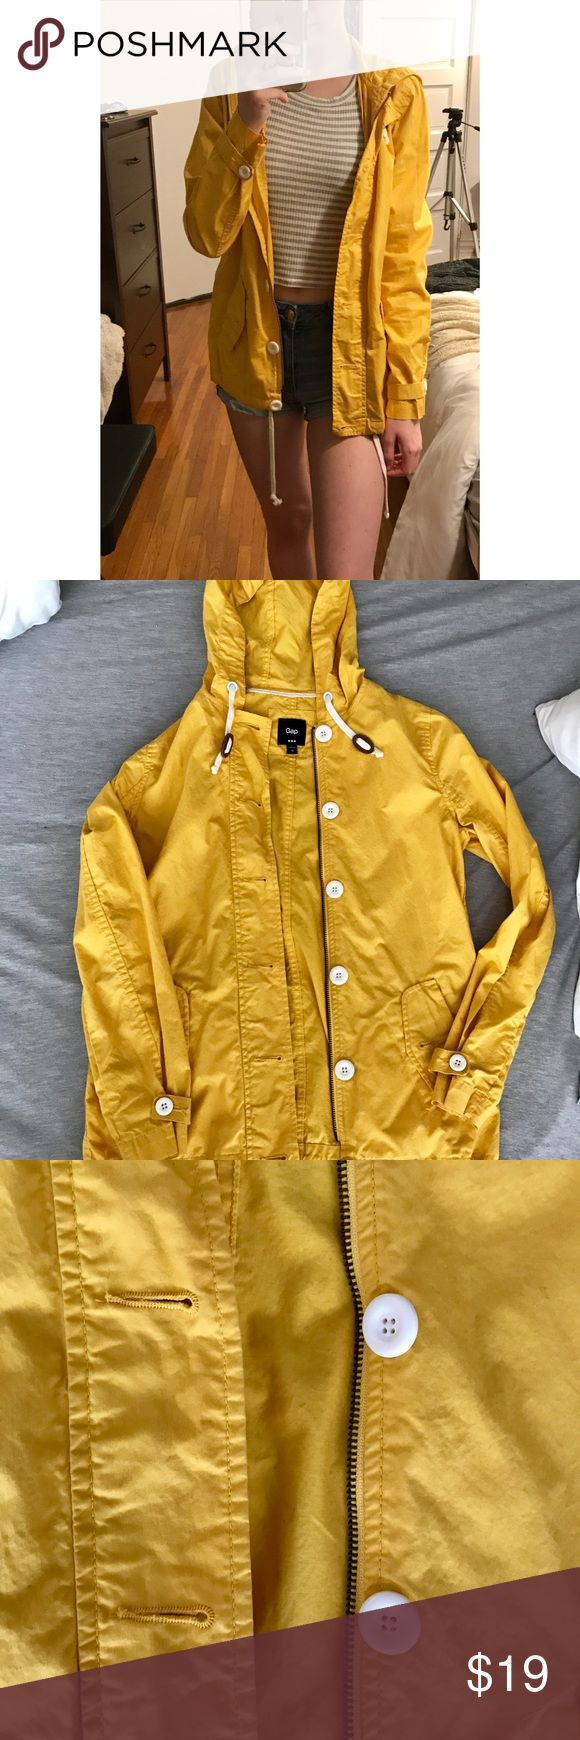 Gap Yellow Zip Up/Button Rain Coat, XS Amazing condition yellow GAP rain coat, size XS. 100% cotton. L: 24 in., W: 18 in. No flaws. Feel free to make an offer or comment any questions you may have below (: GAP Jackets & Coats Pea Coats